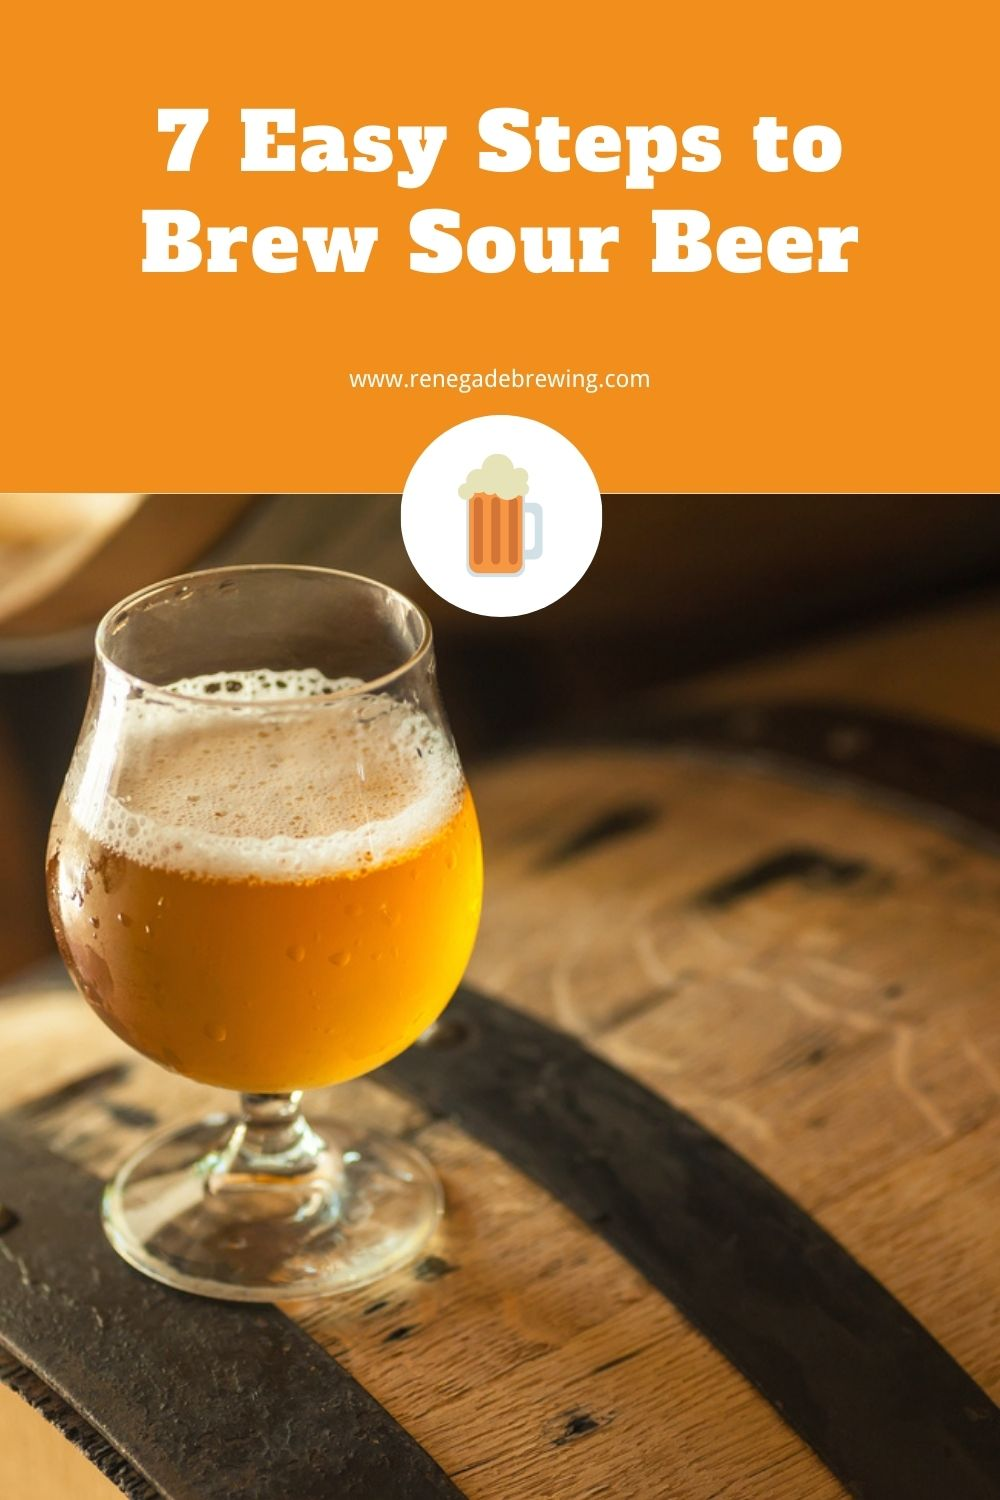 7 Easy Steps to Brew Sour Beer 2